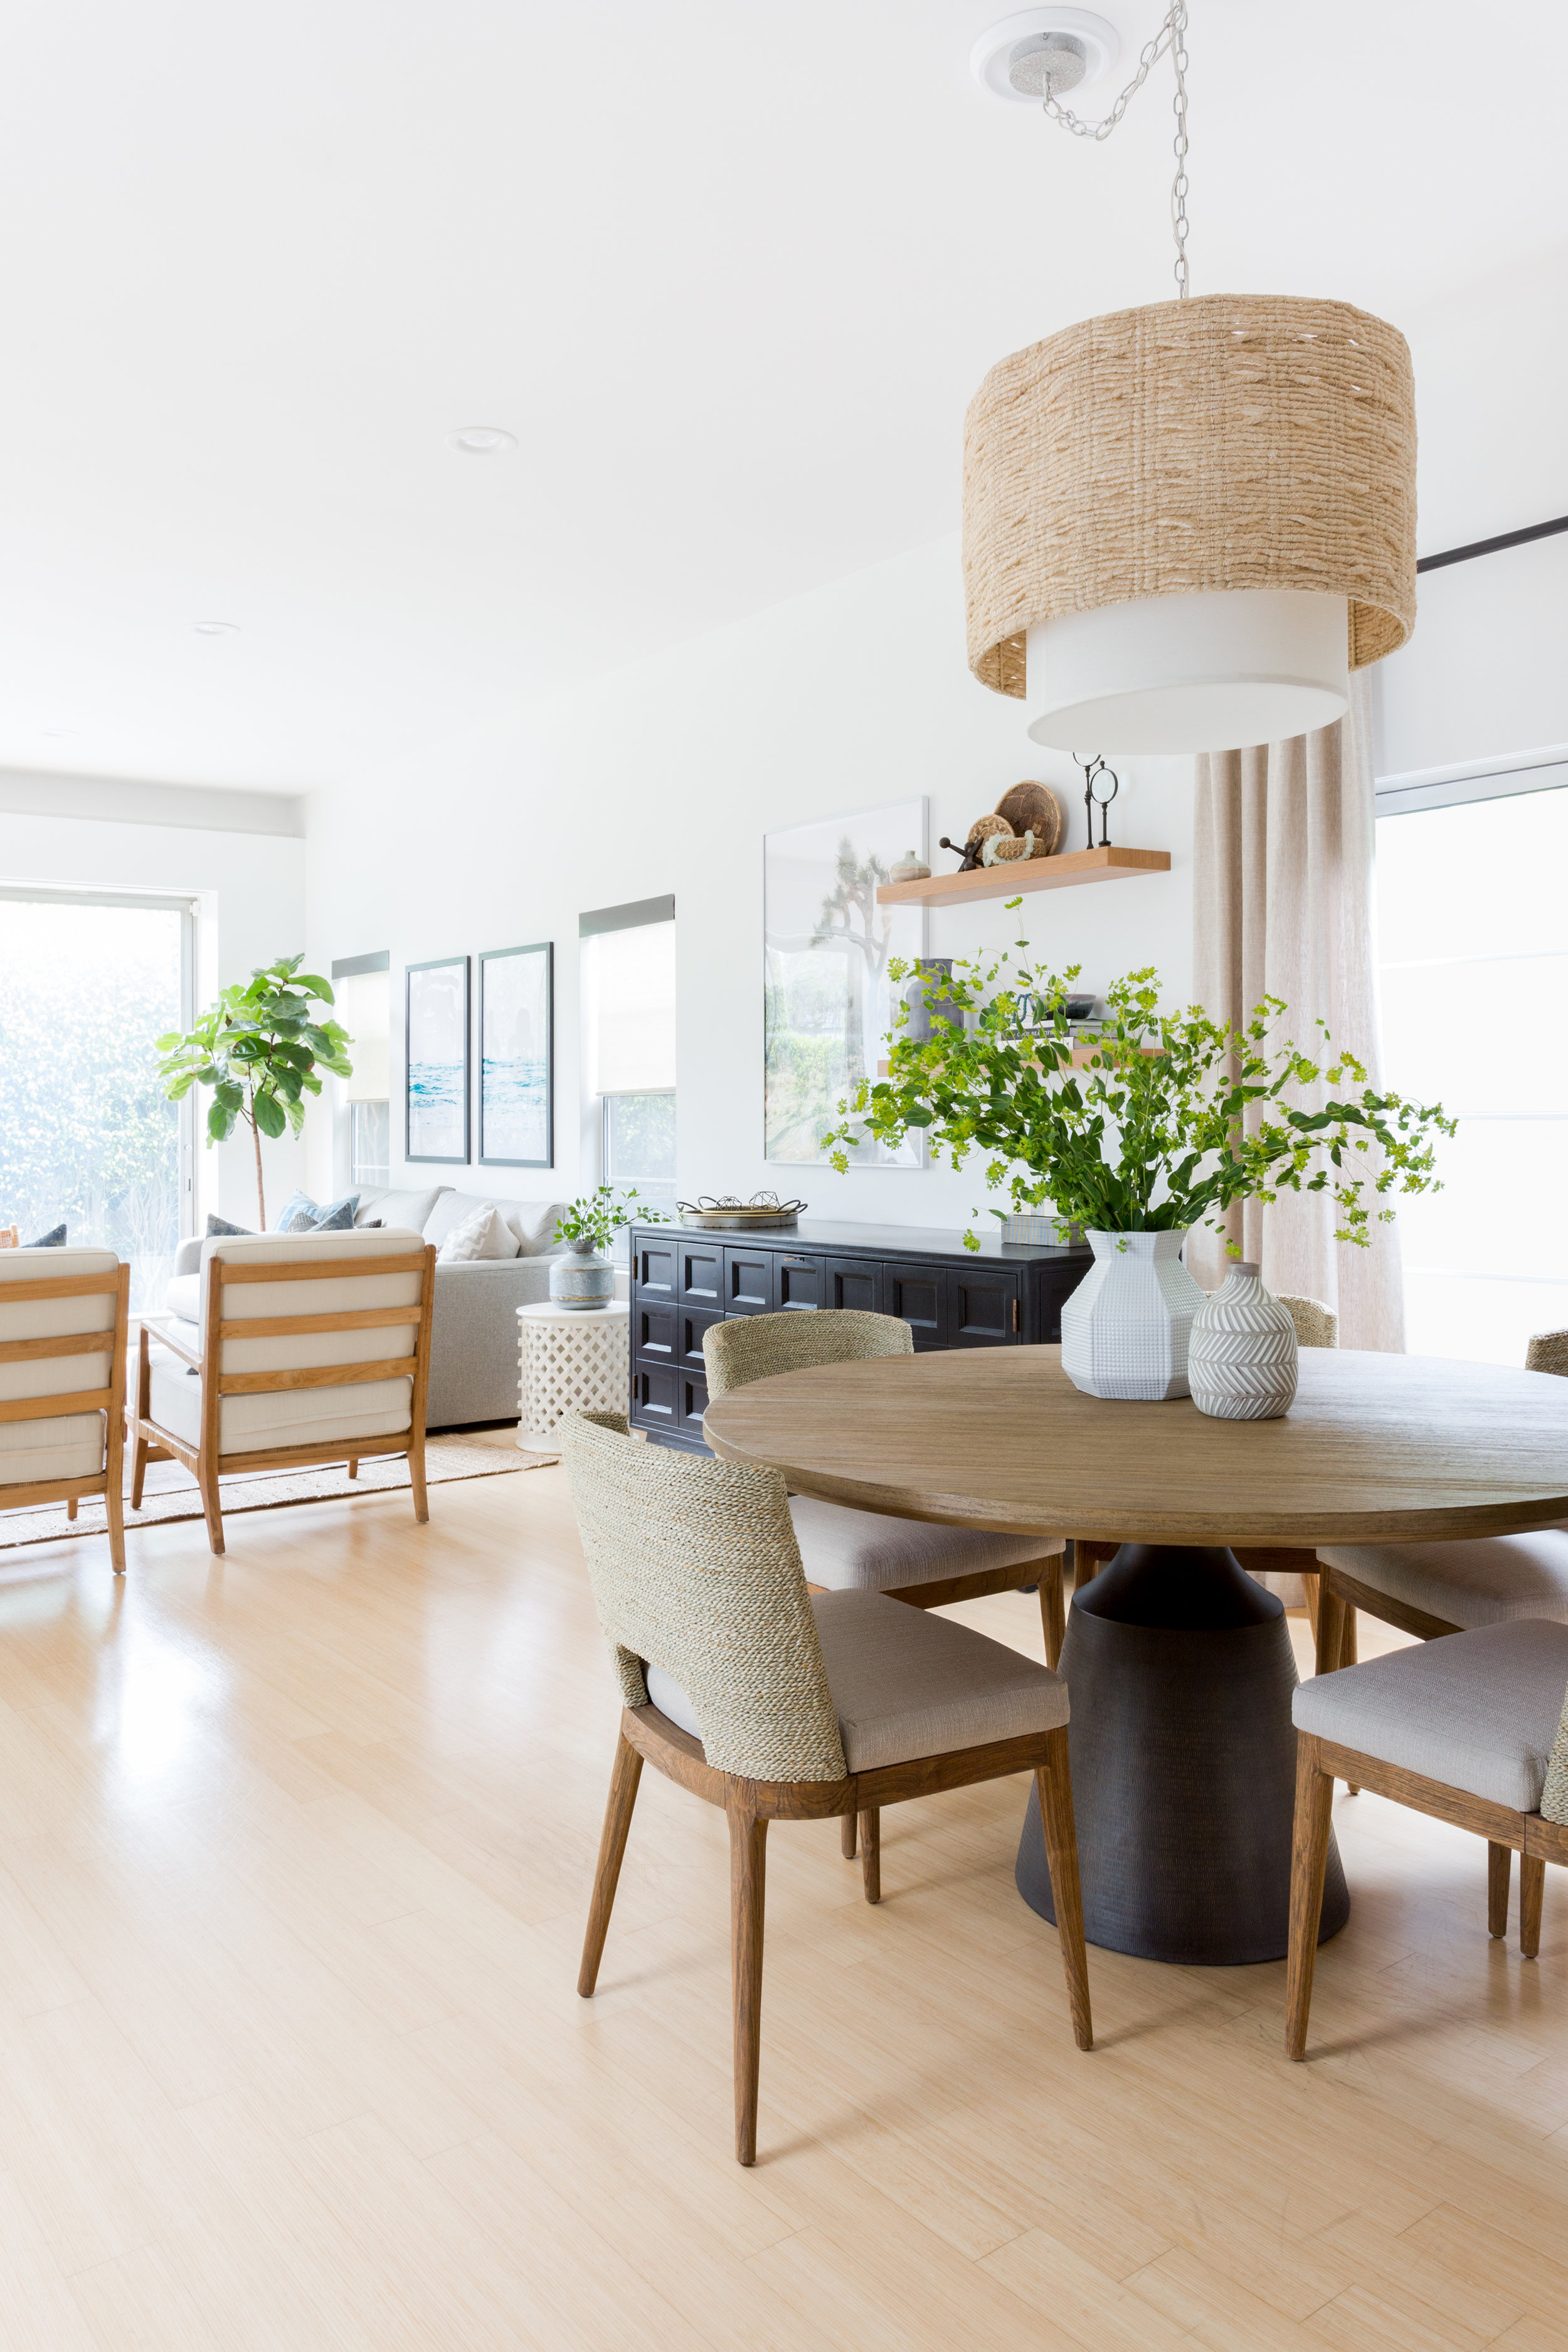 California Casual Dining Room Reveal by Thousand Oaks designer Lindsey Brooke Design.jpg